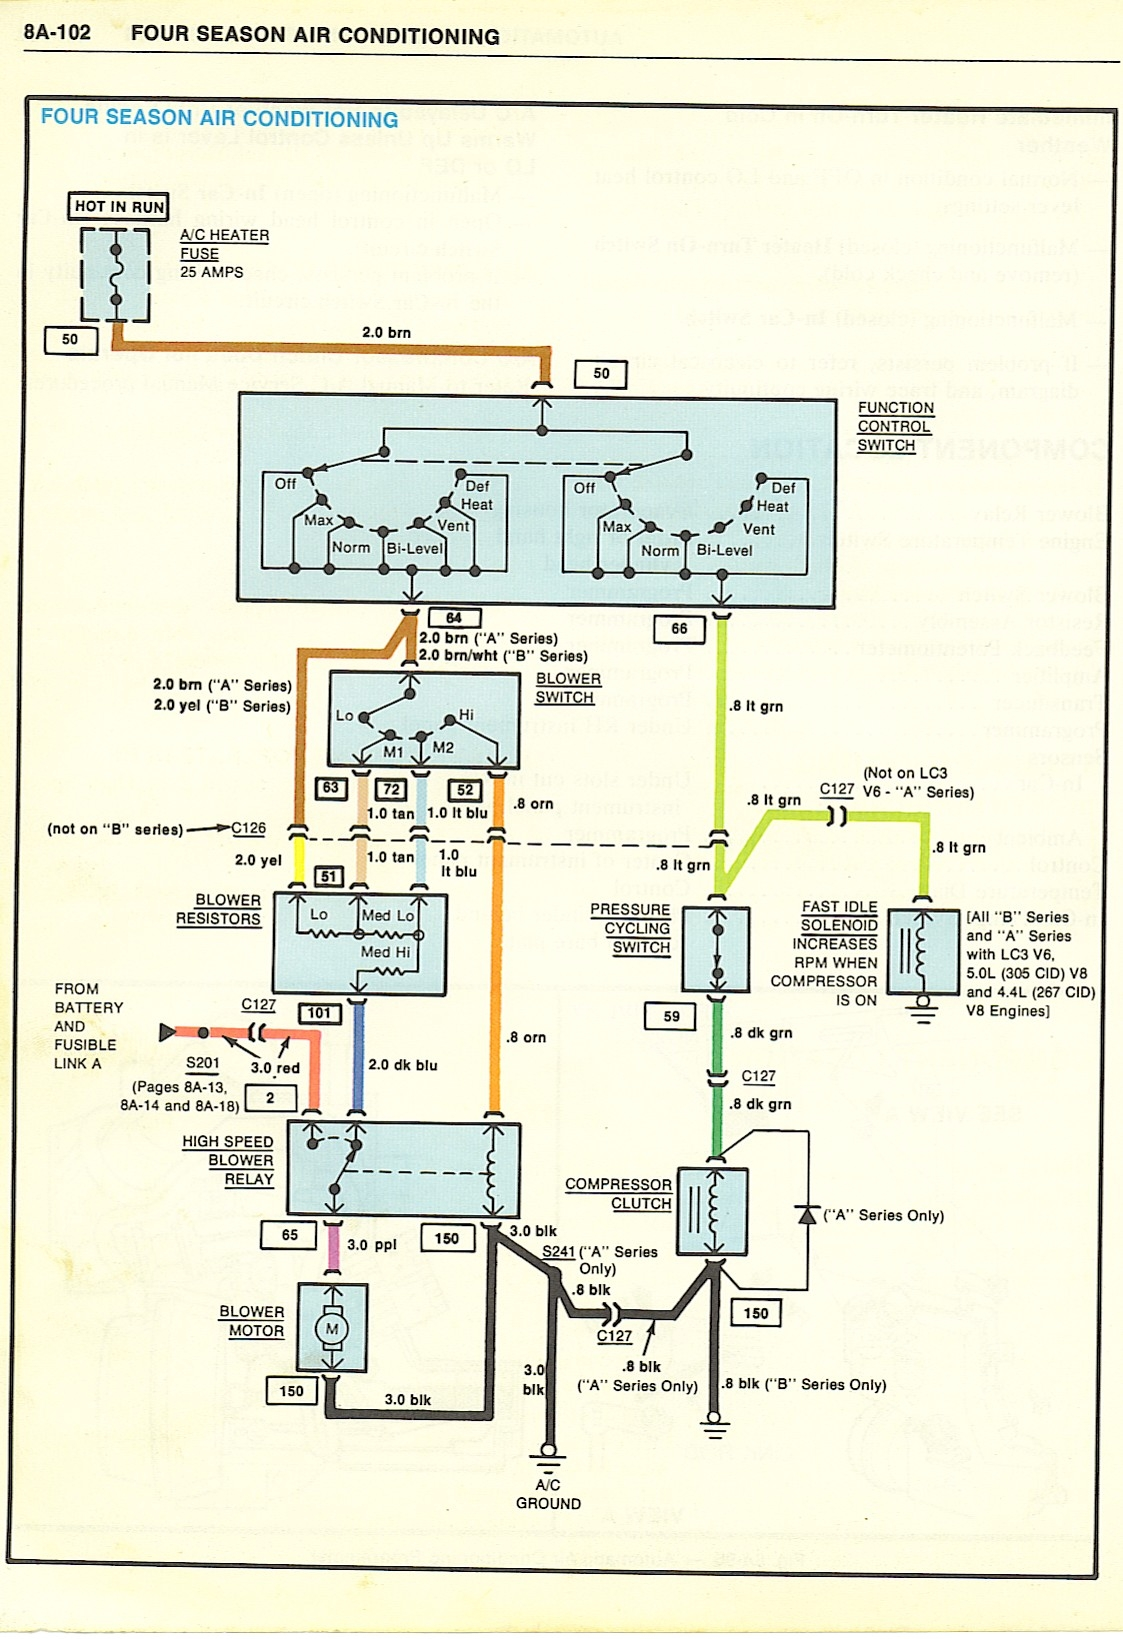 1968 FourSeasonAirConditioner chevy diagrams ac wiring diagram at love-stories.co